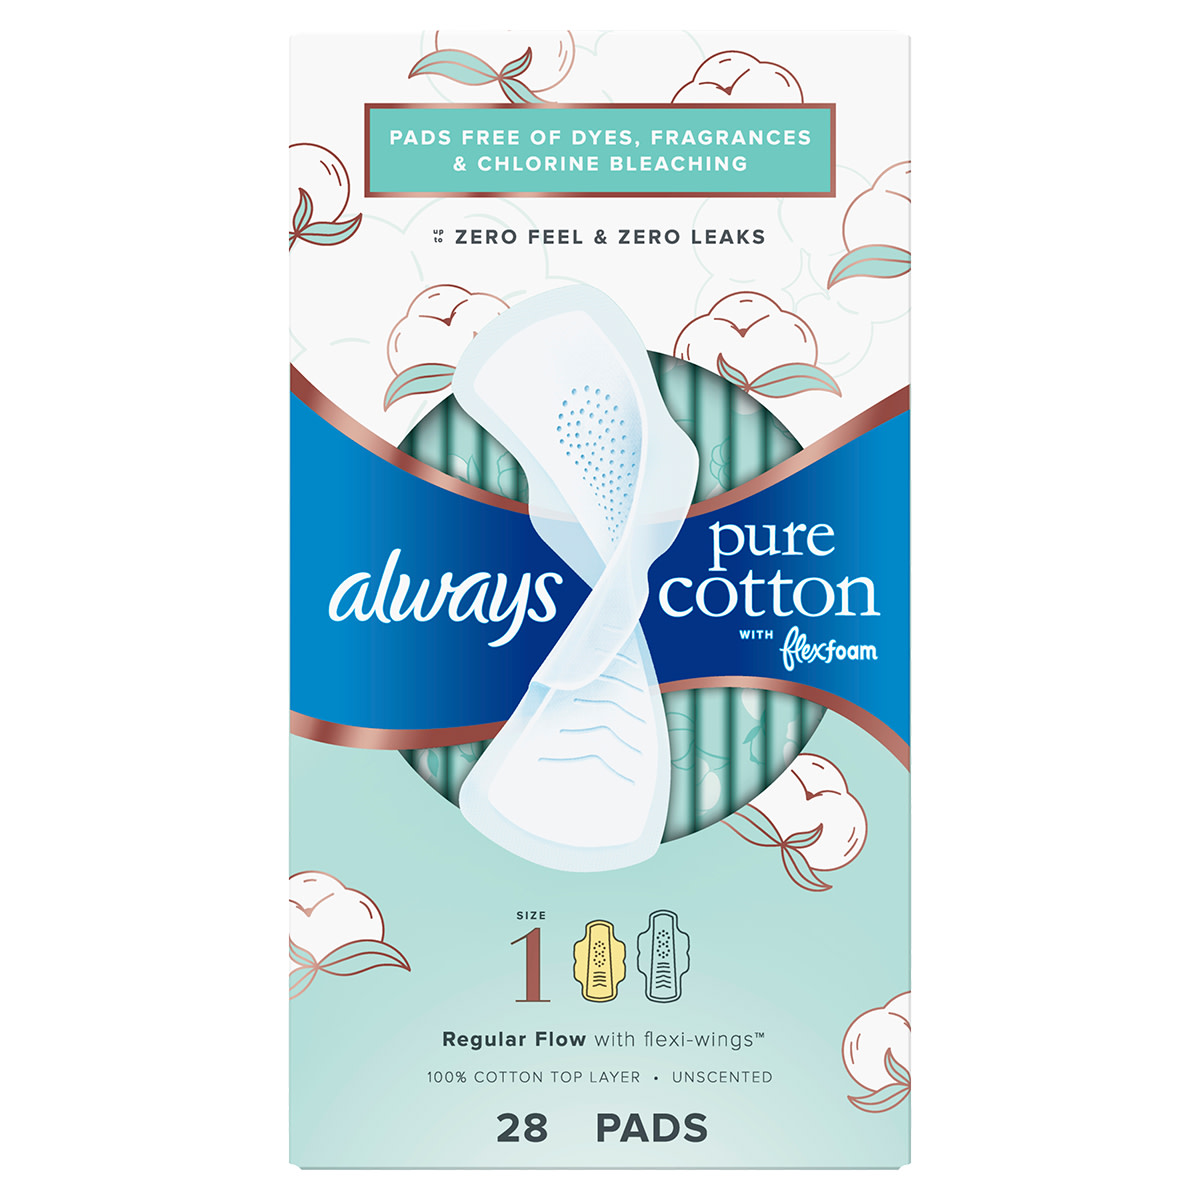 Always Pure Cotton Size 1 Pads 28ct